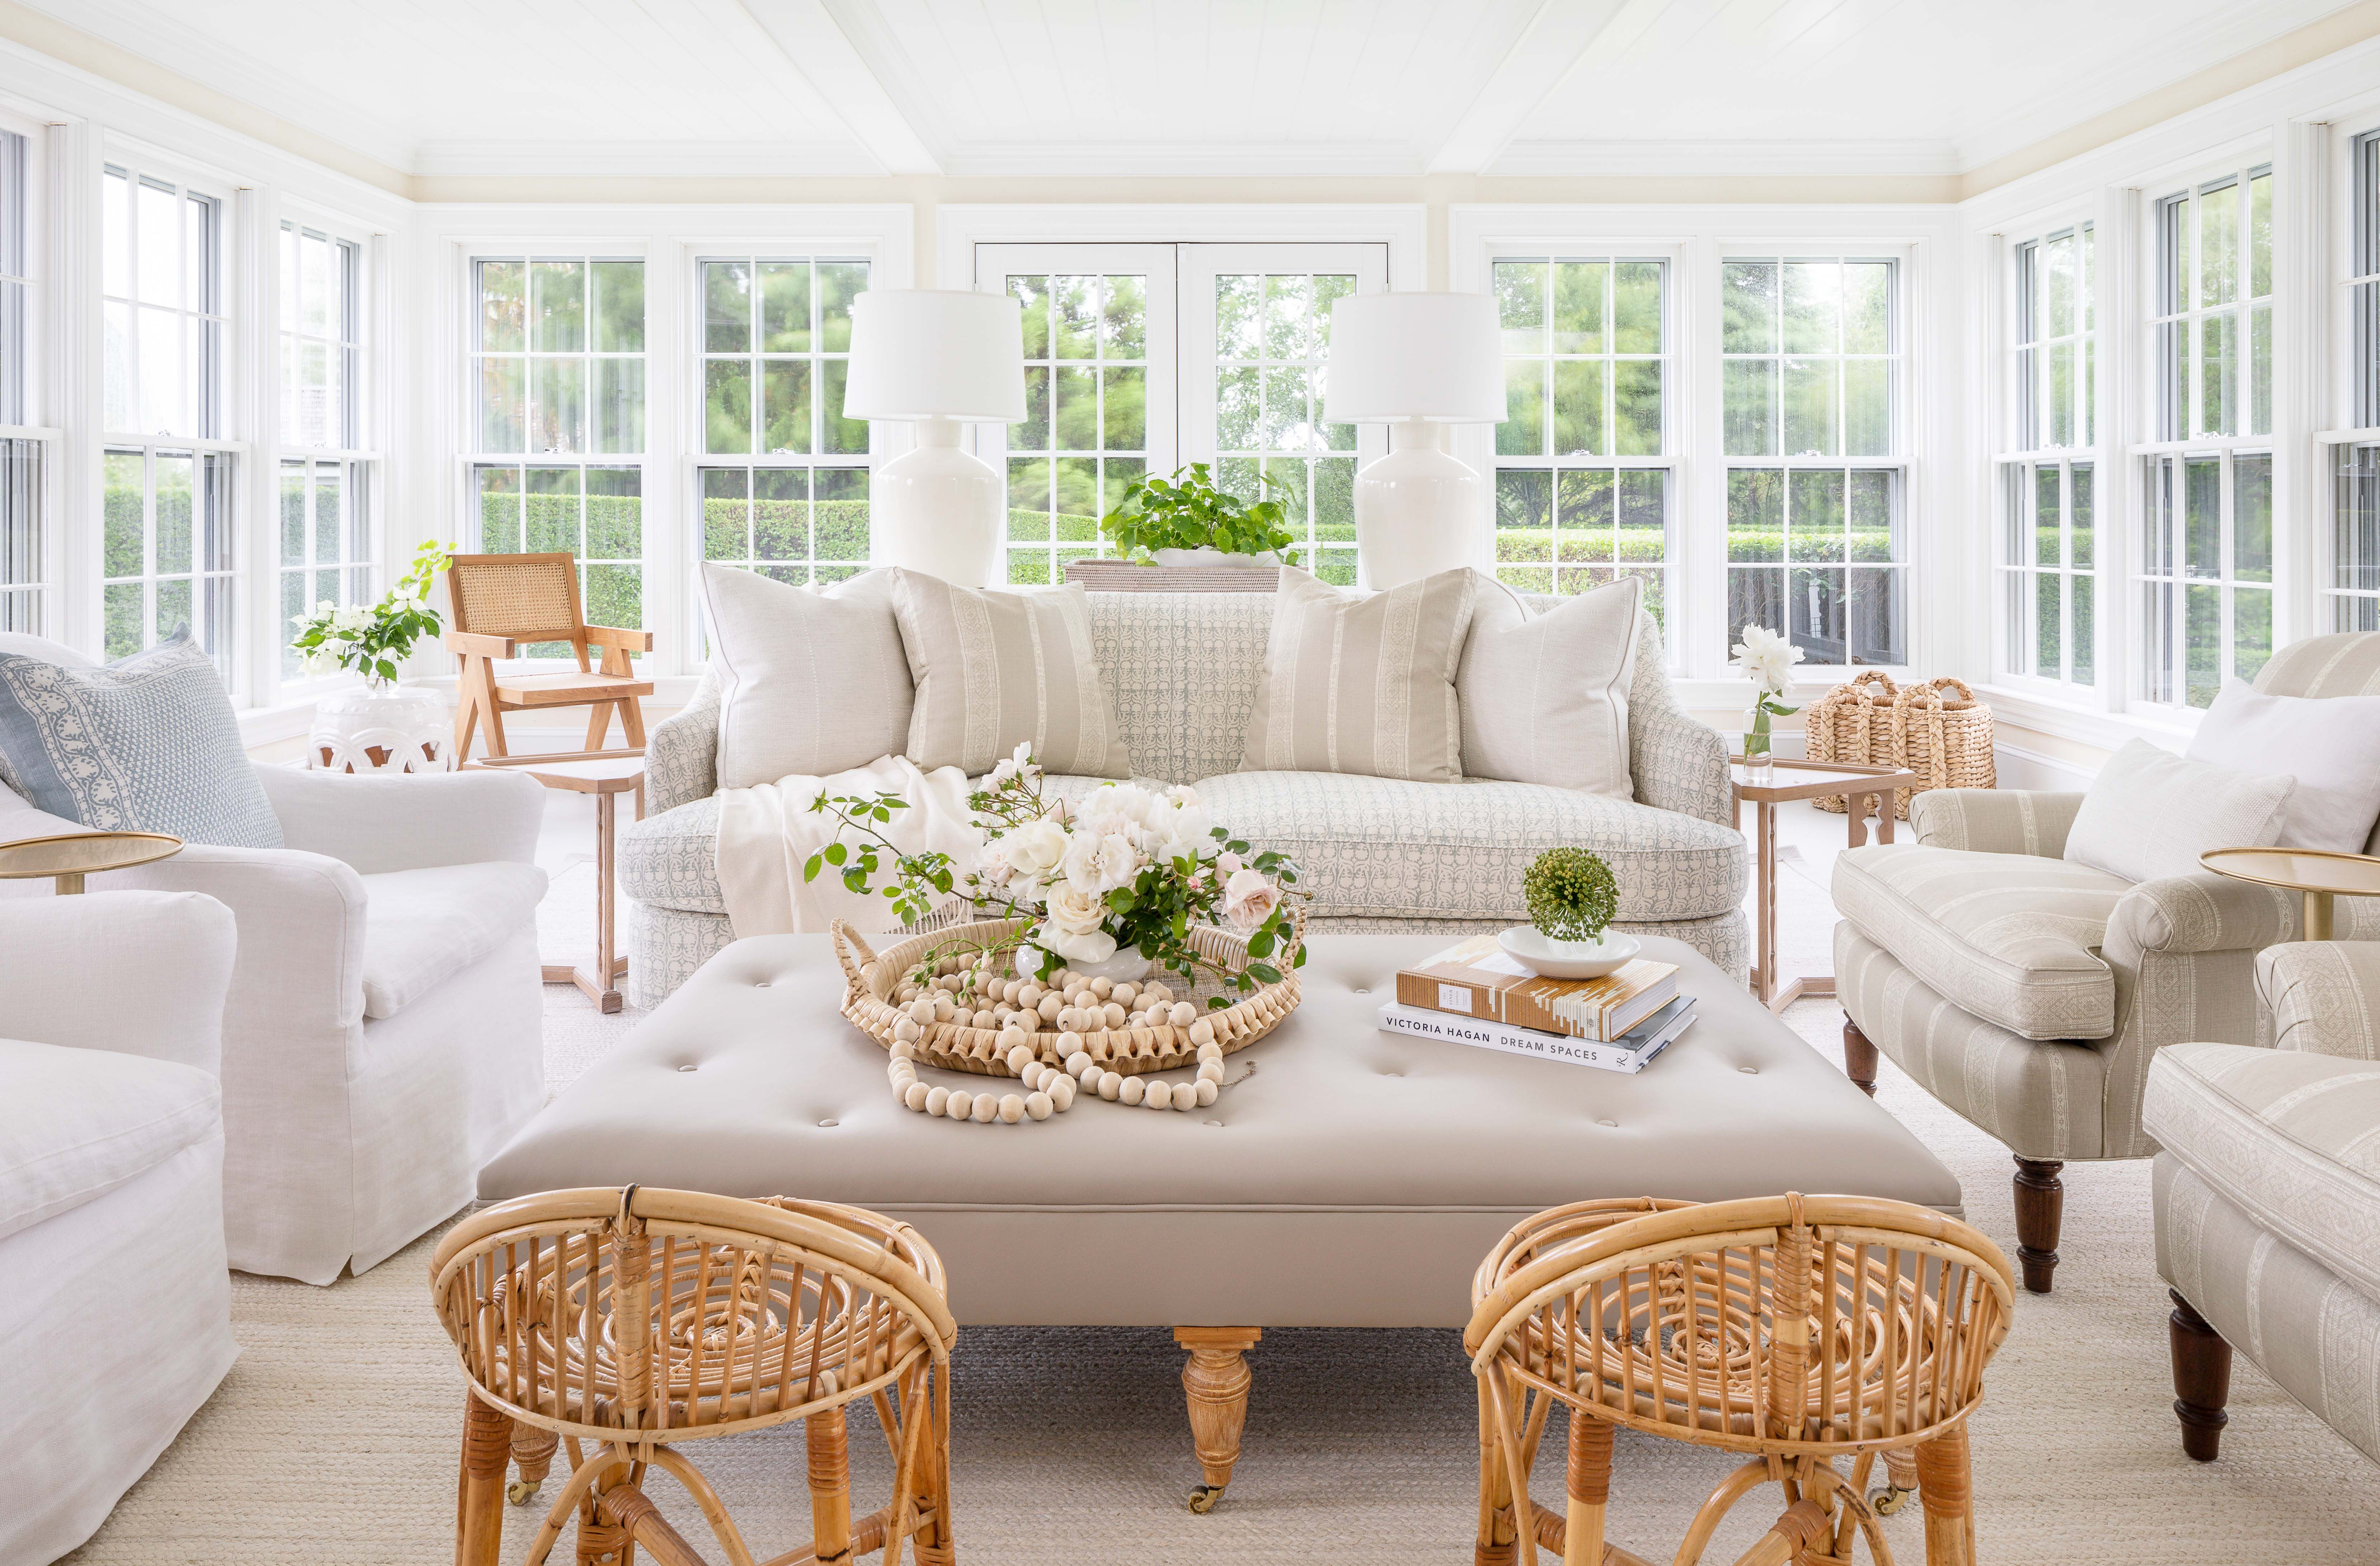 Home Decorating Trends 2020 House Beautiful Next Wave Designer Trends